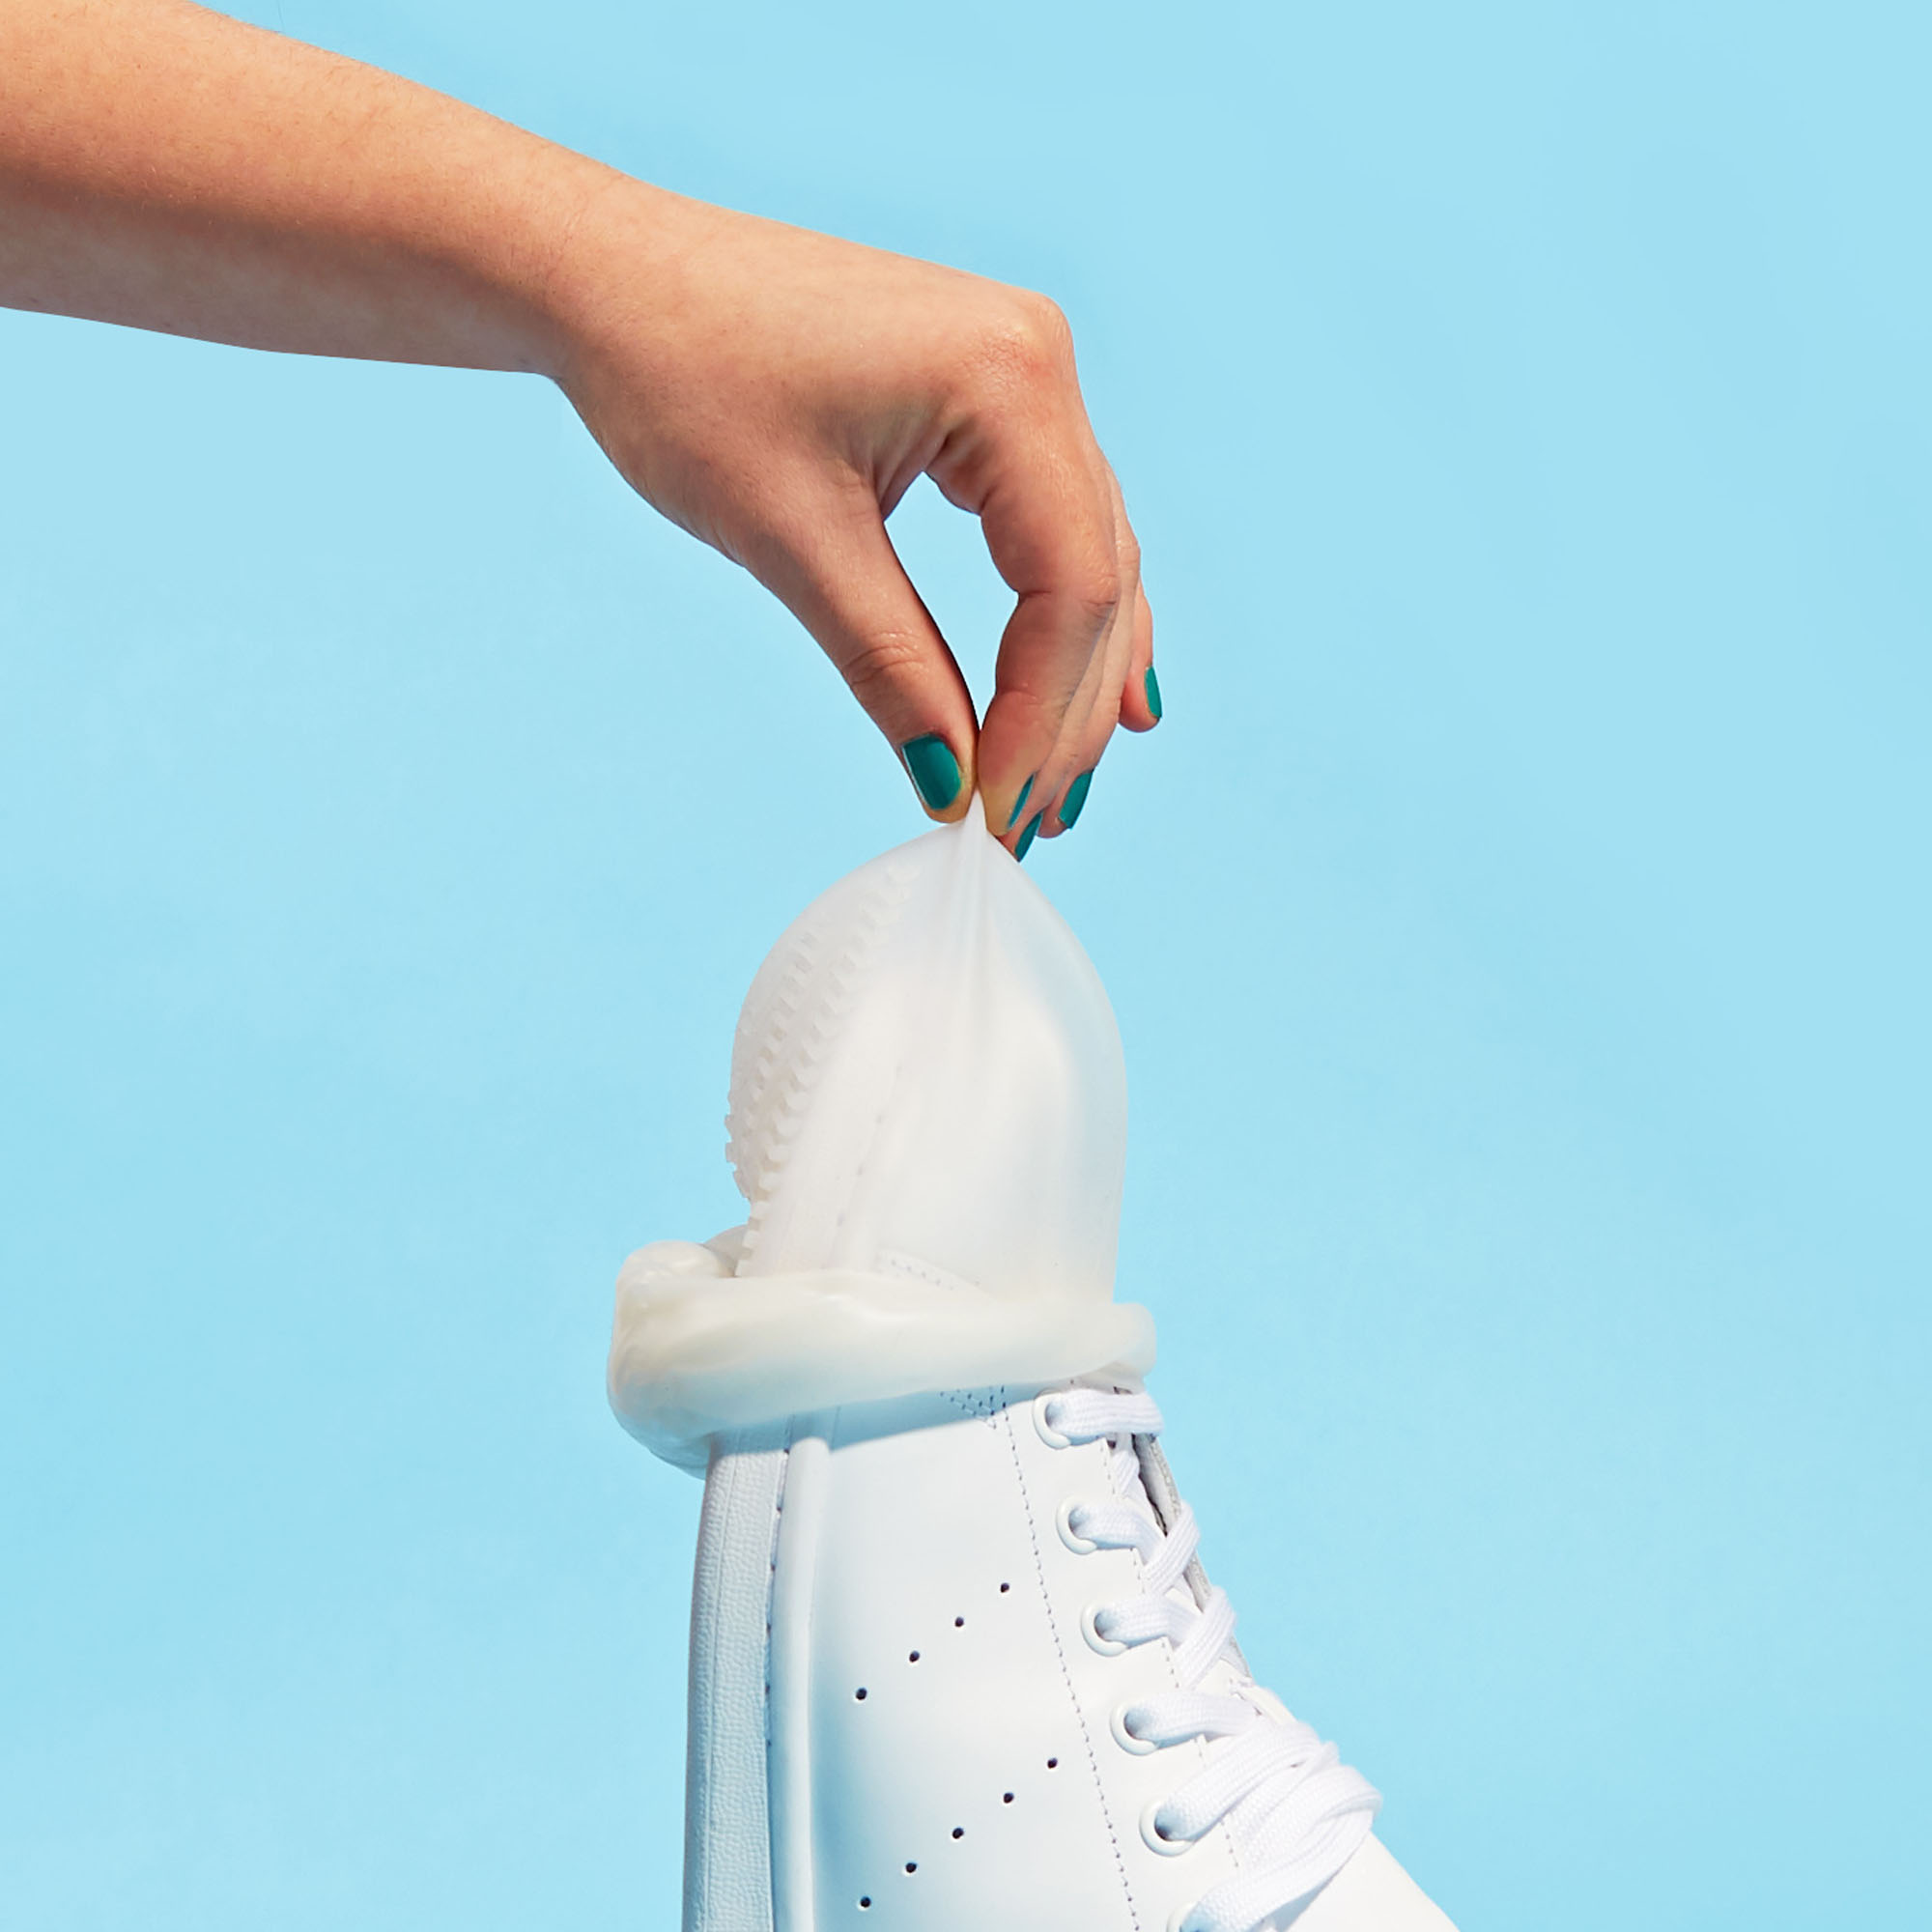 Sneakerheads, rejoice: These shoe condoms will protect your trainers from dirt and grime